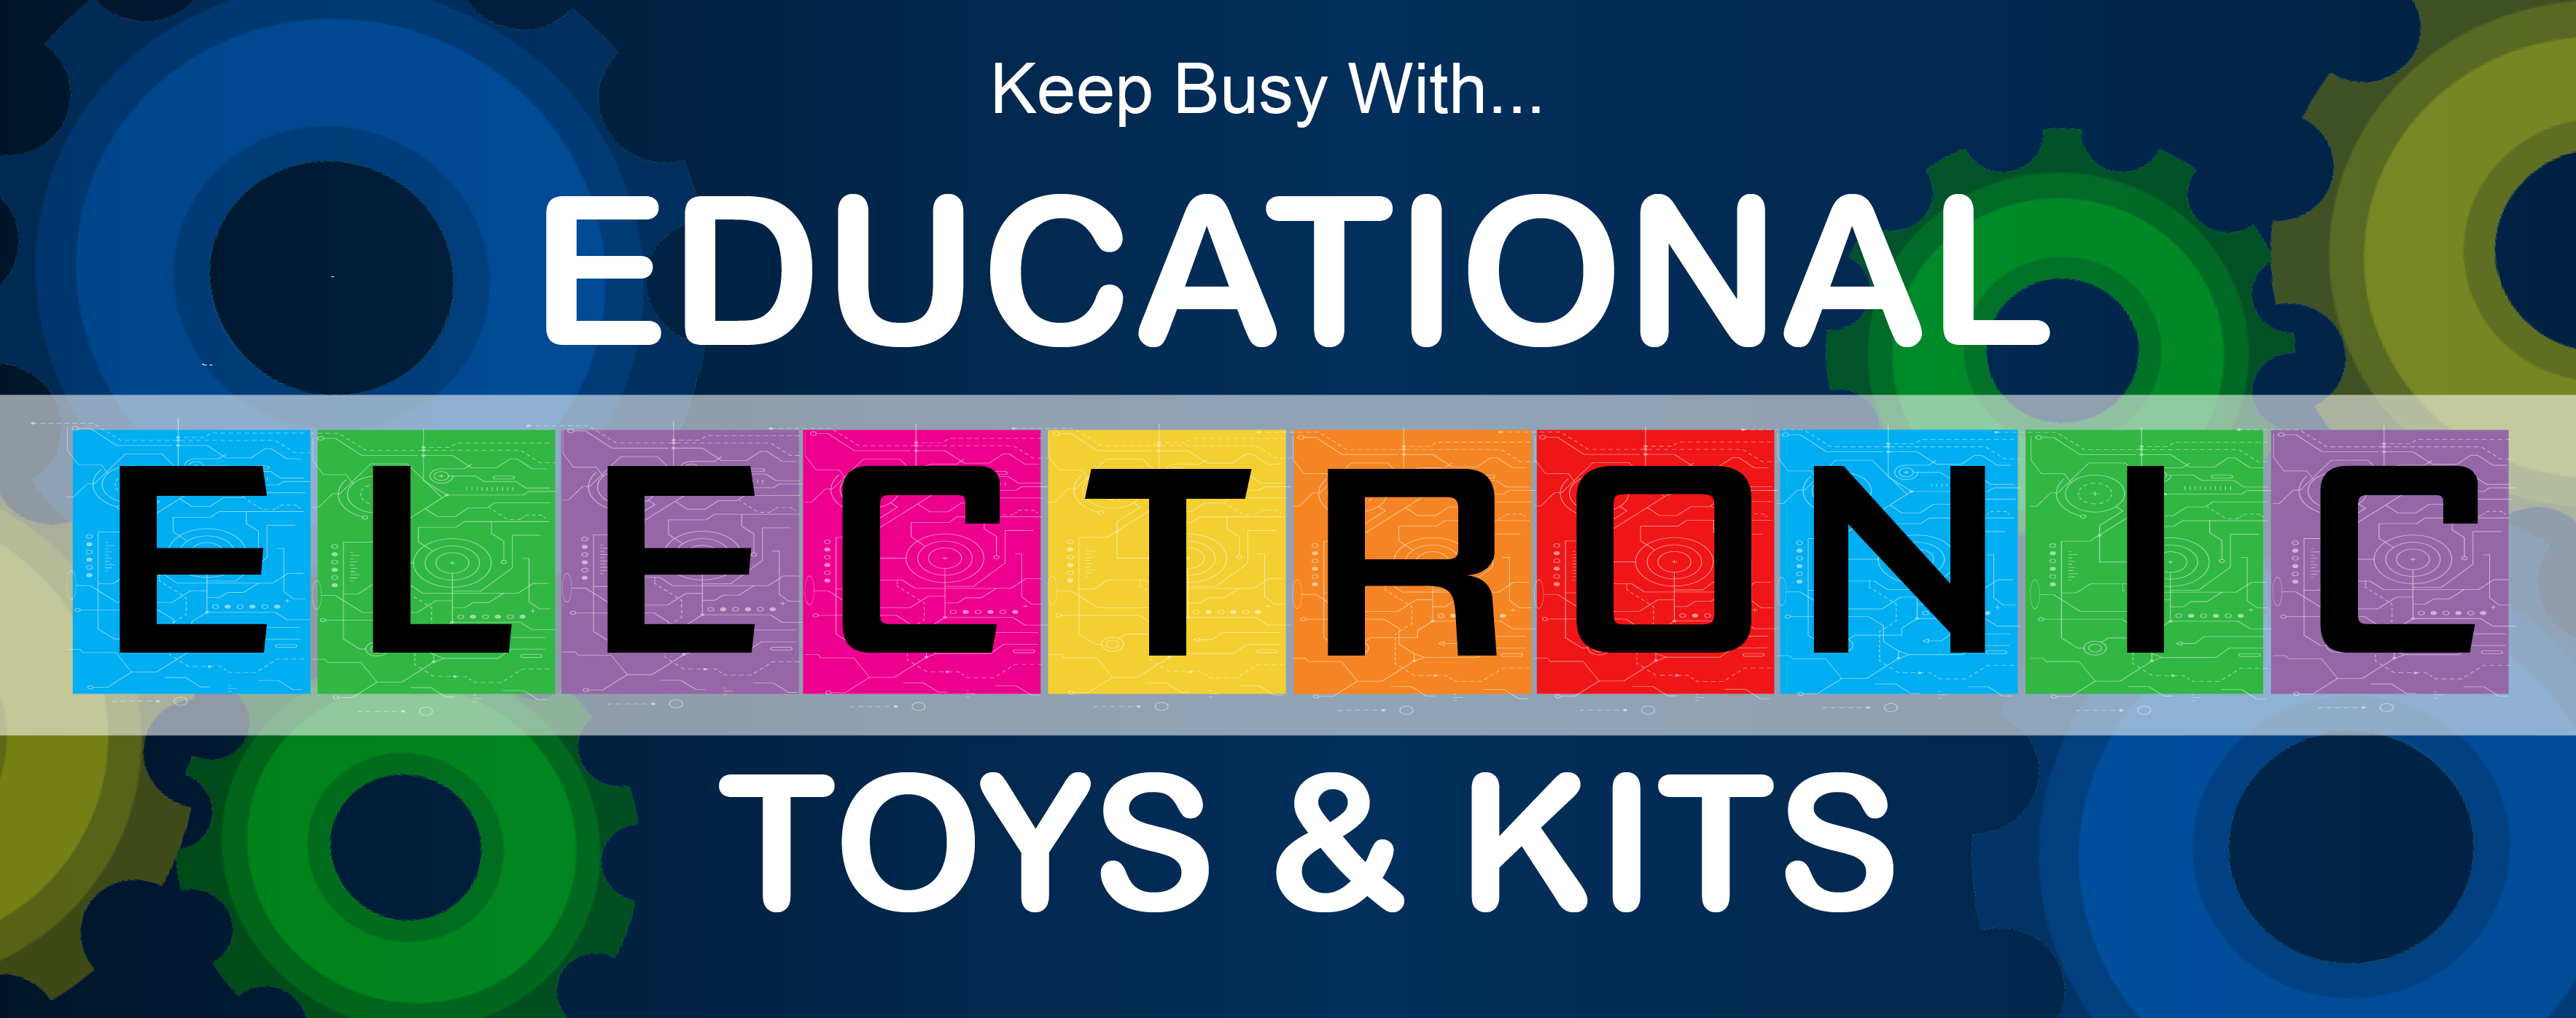 Educational Electronic Toys & Kits